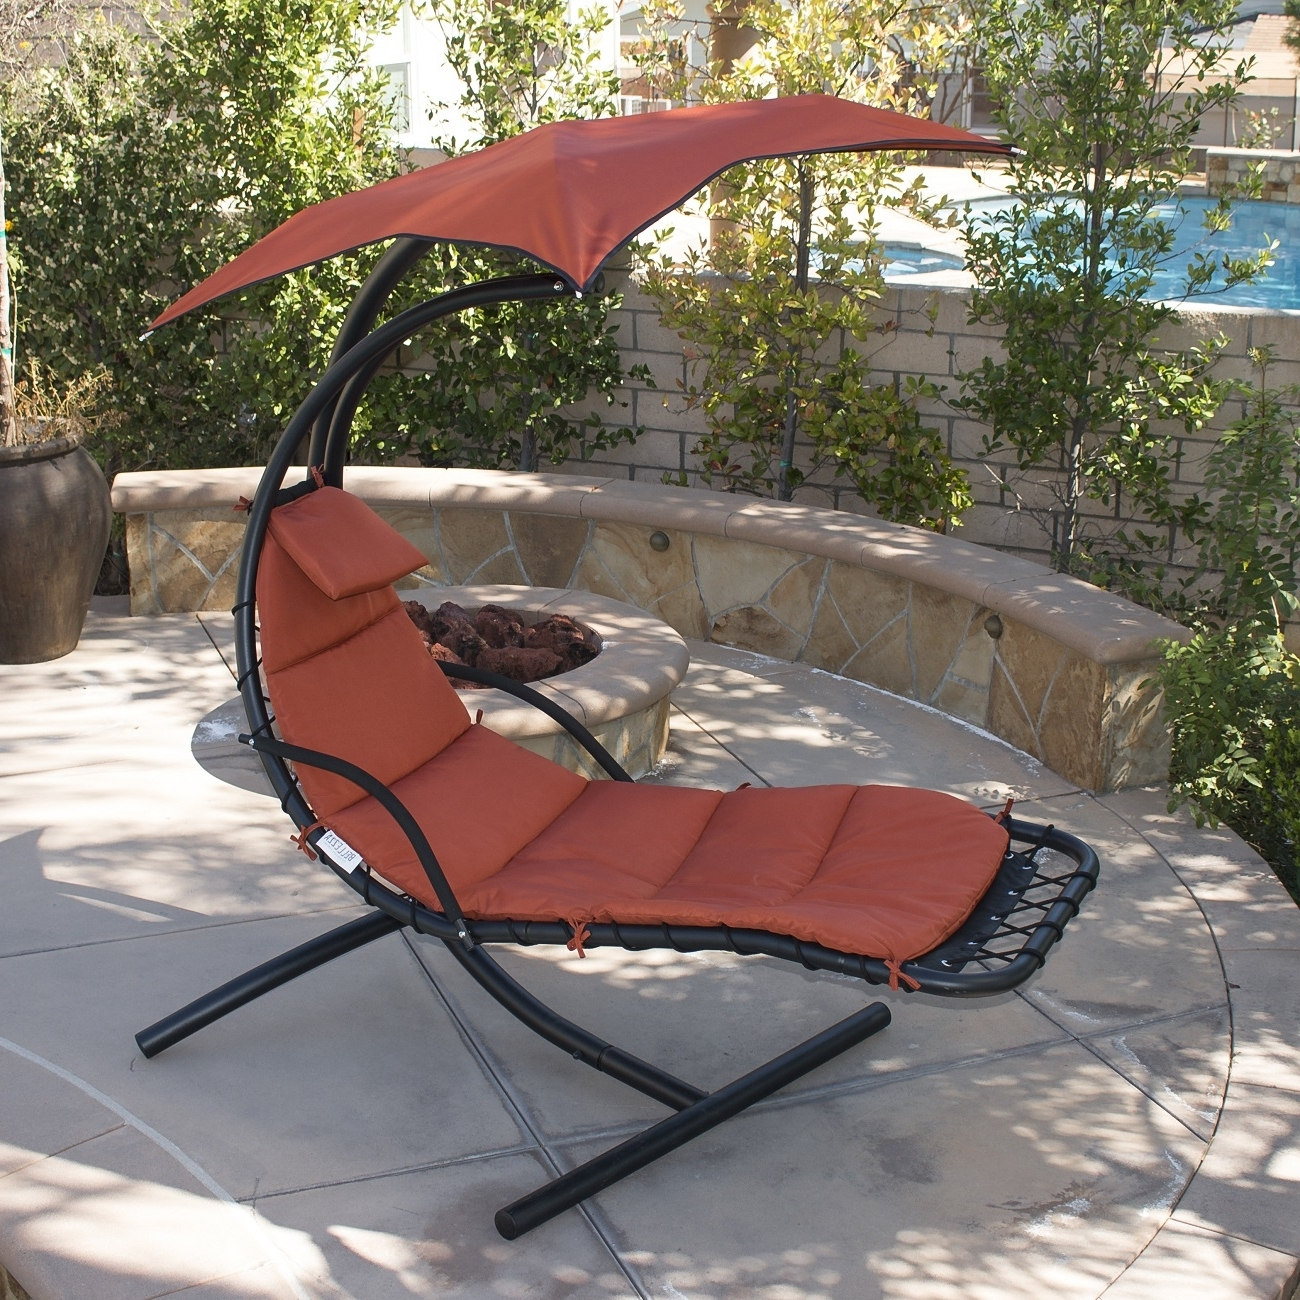 Hanging Chaise Lounge Chair Hammock Swing Canopy Glider Outdoor In Well Liked Hanging Chaise Lounge Chairs (View 6 of 15)